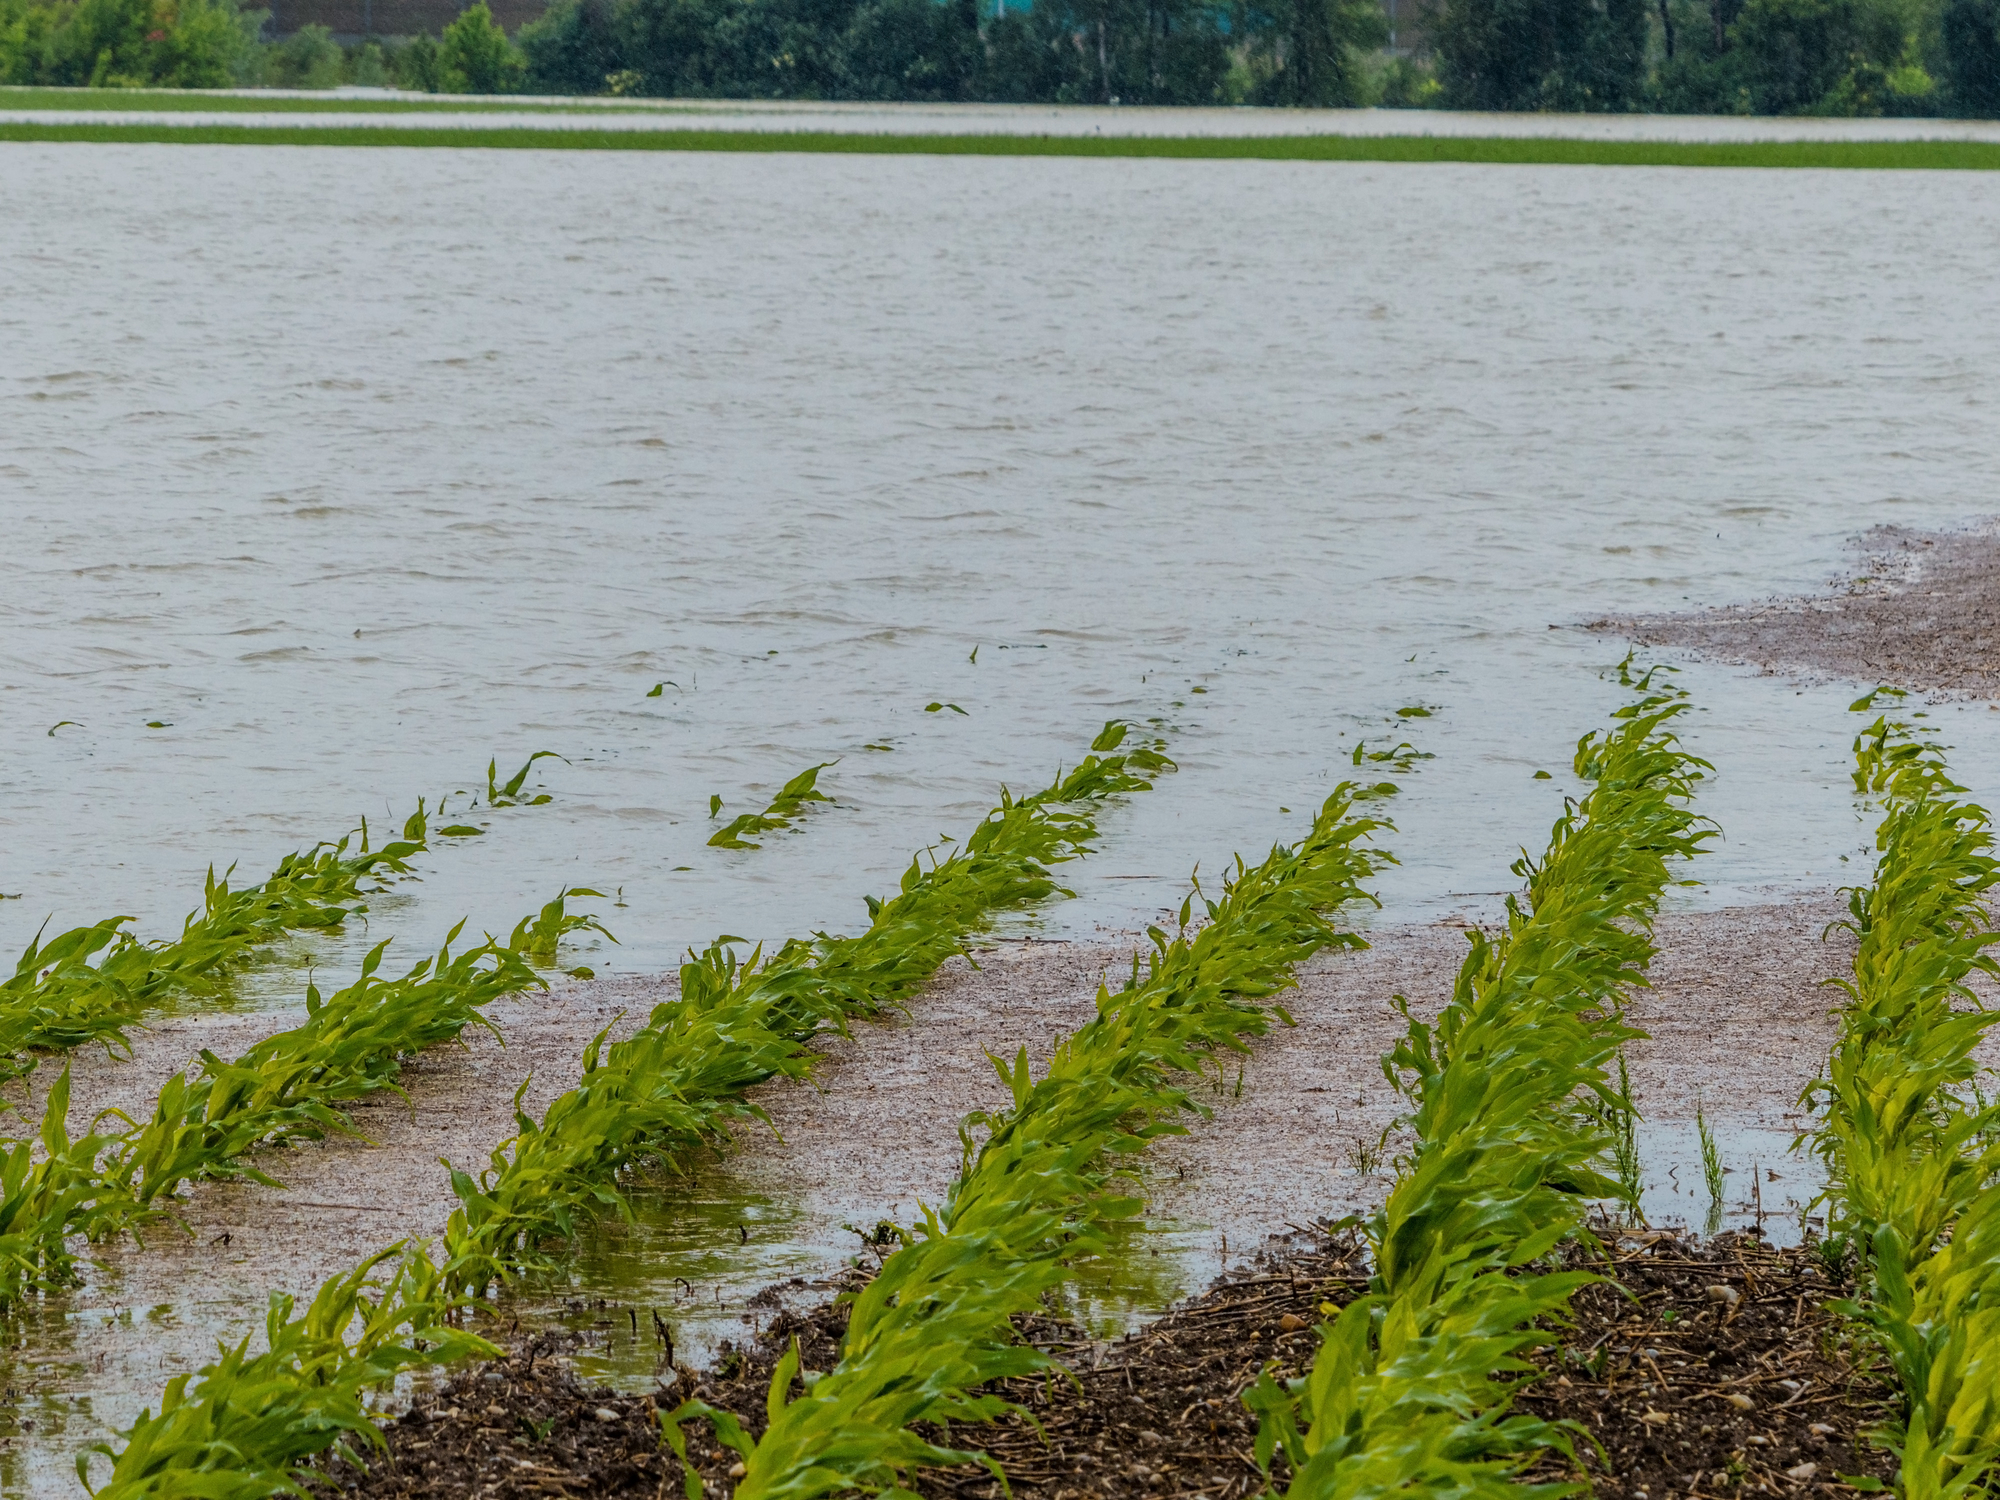 flood 2013. austria. flooding and floods in agriculture